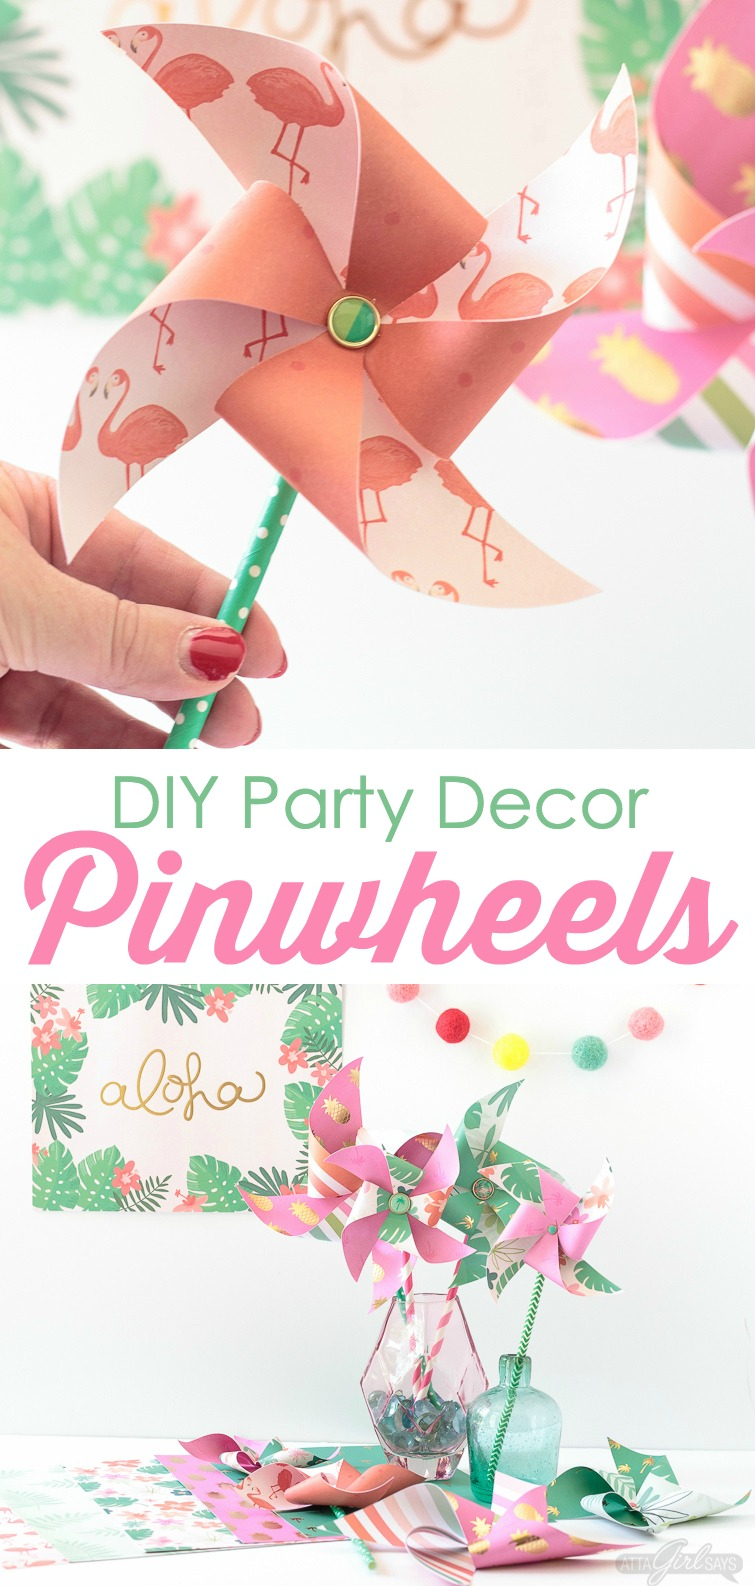 Need to add a festive touch to any occasion? Grab some pretty patterned scrapbook paper and I'll show you how to make pinwheels. They're so easy to make, even kids can help! Use your homemade pinwheels for party banners, cupcake toppers, centerpieces and more. #papercrafts #pinwheels #scrapbookpaper #papercrafting